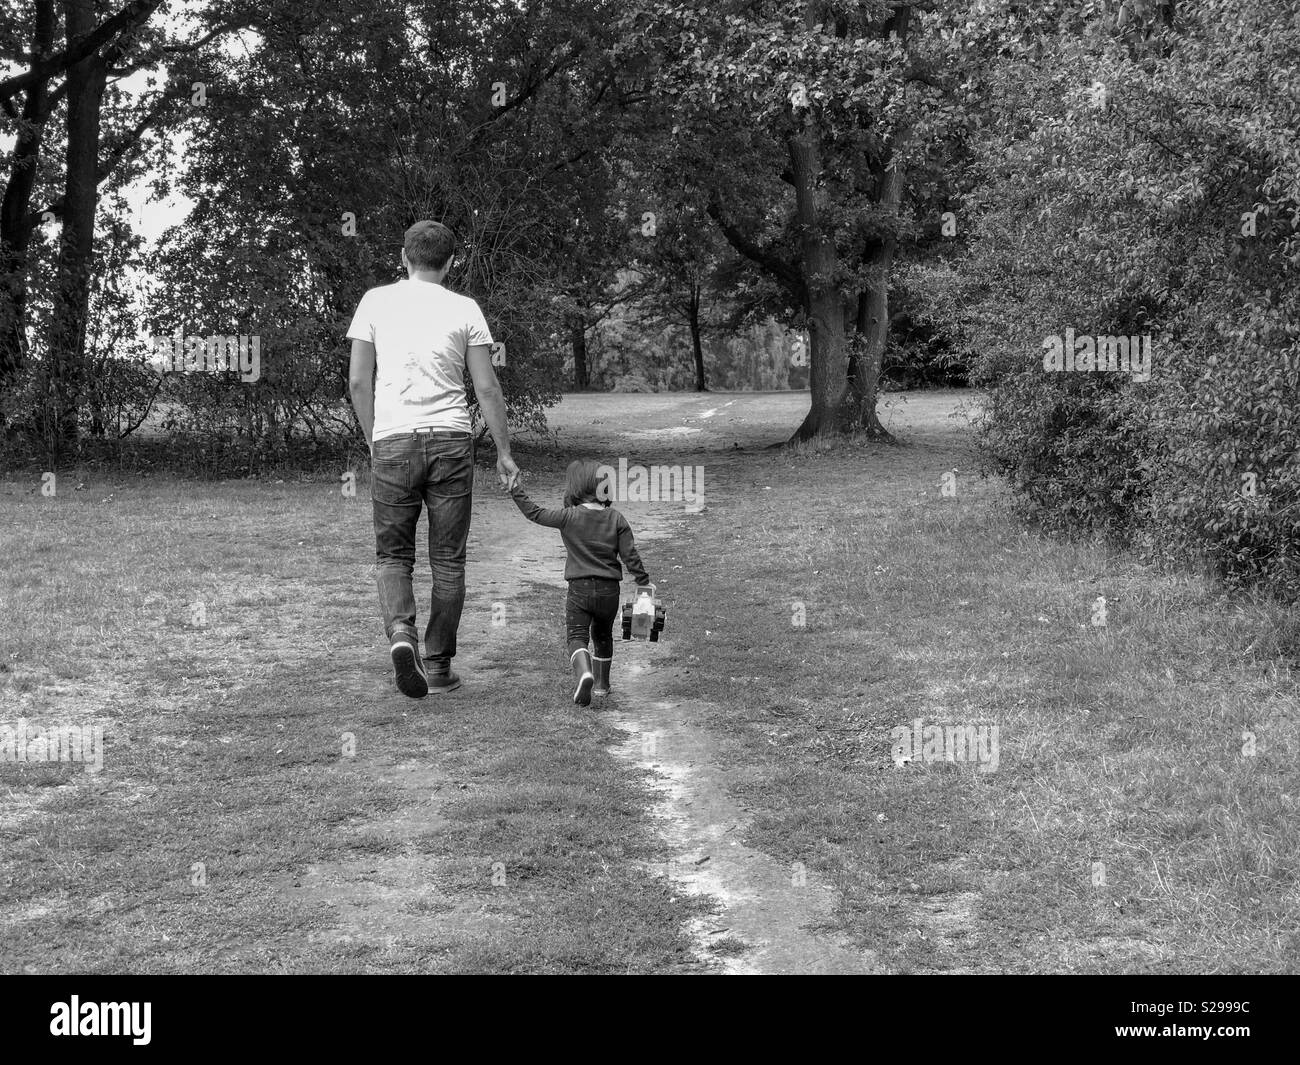 Father and daughter holding hands on a road in a park - Stock Image